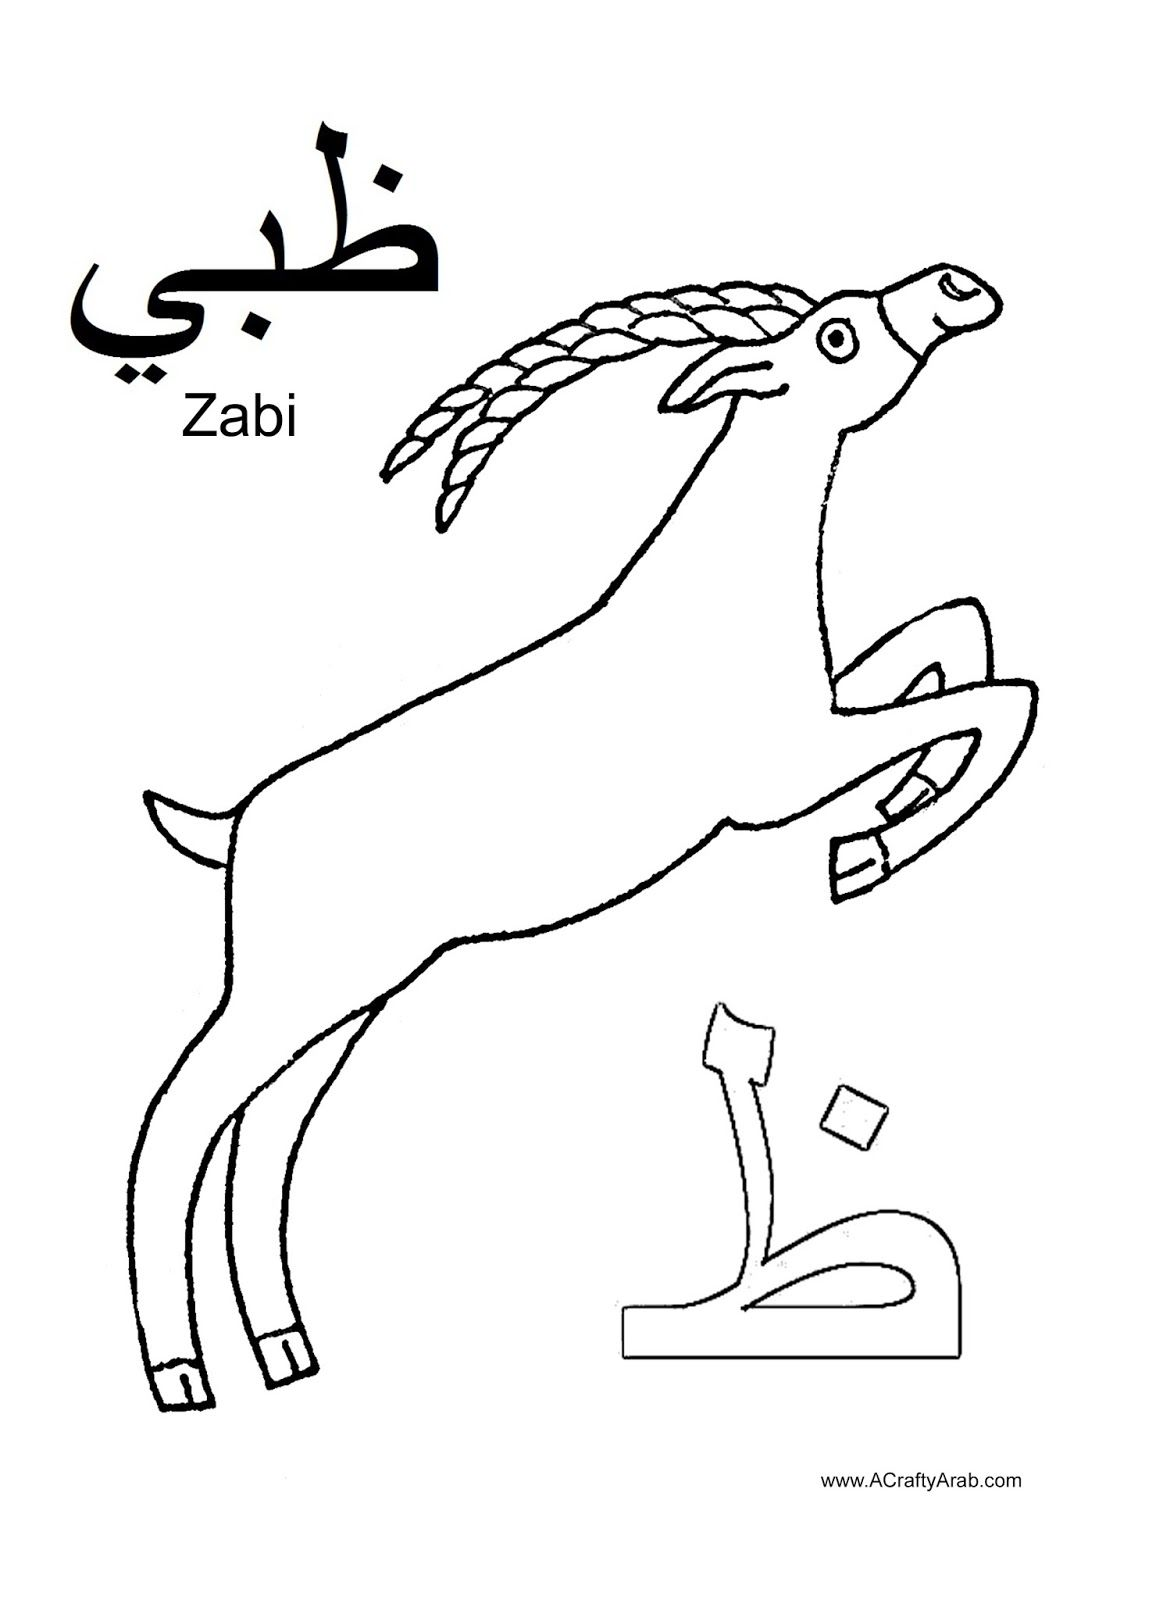 Printable Pages Of The Arabic Alphabet To Color Arabic Alphabet